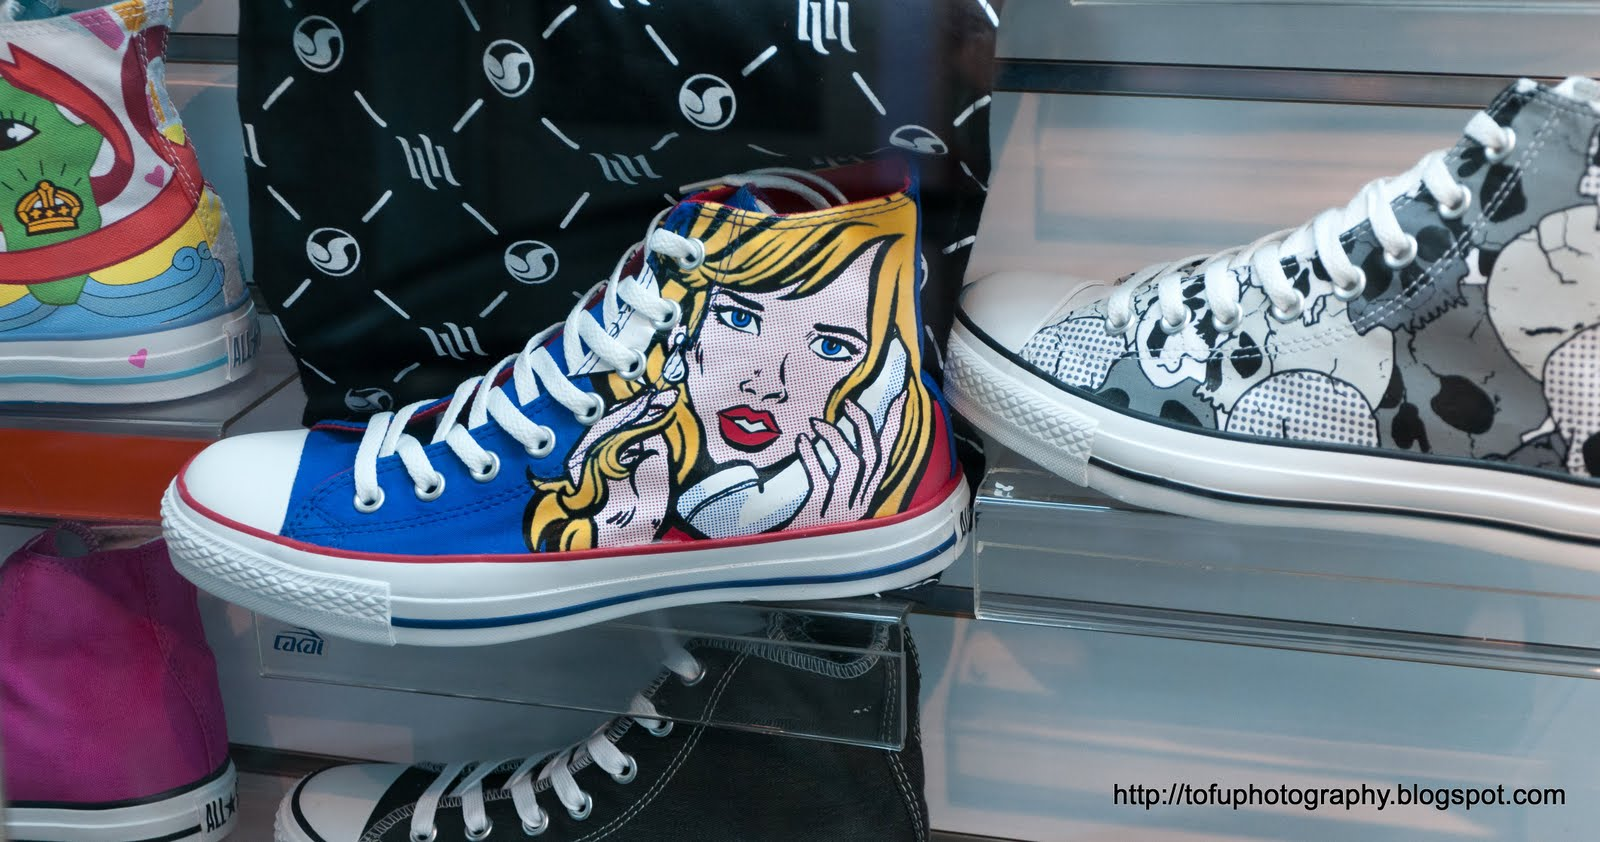 Great canvas shoes for sale in a shop in Taipei, Taiwan in August 2010.  Woman on the phone